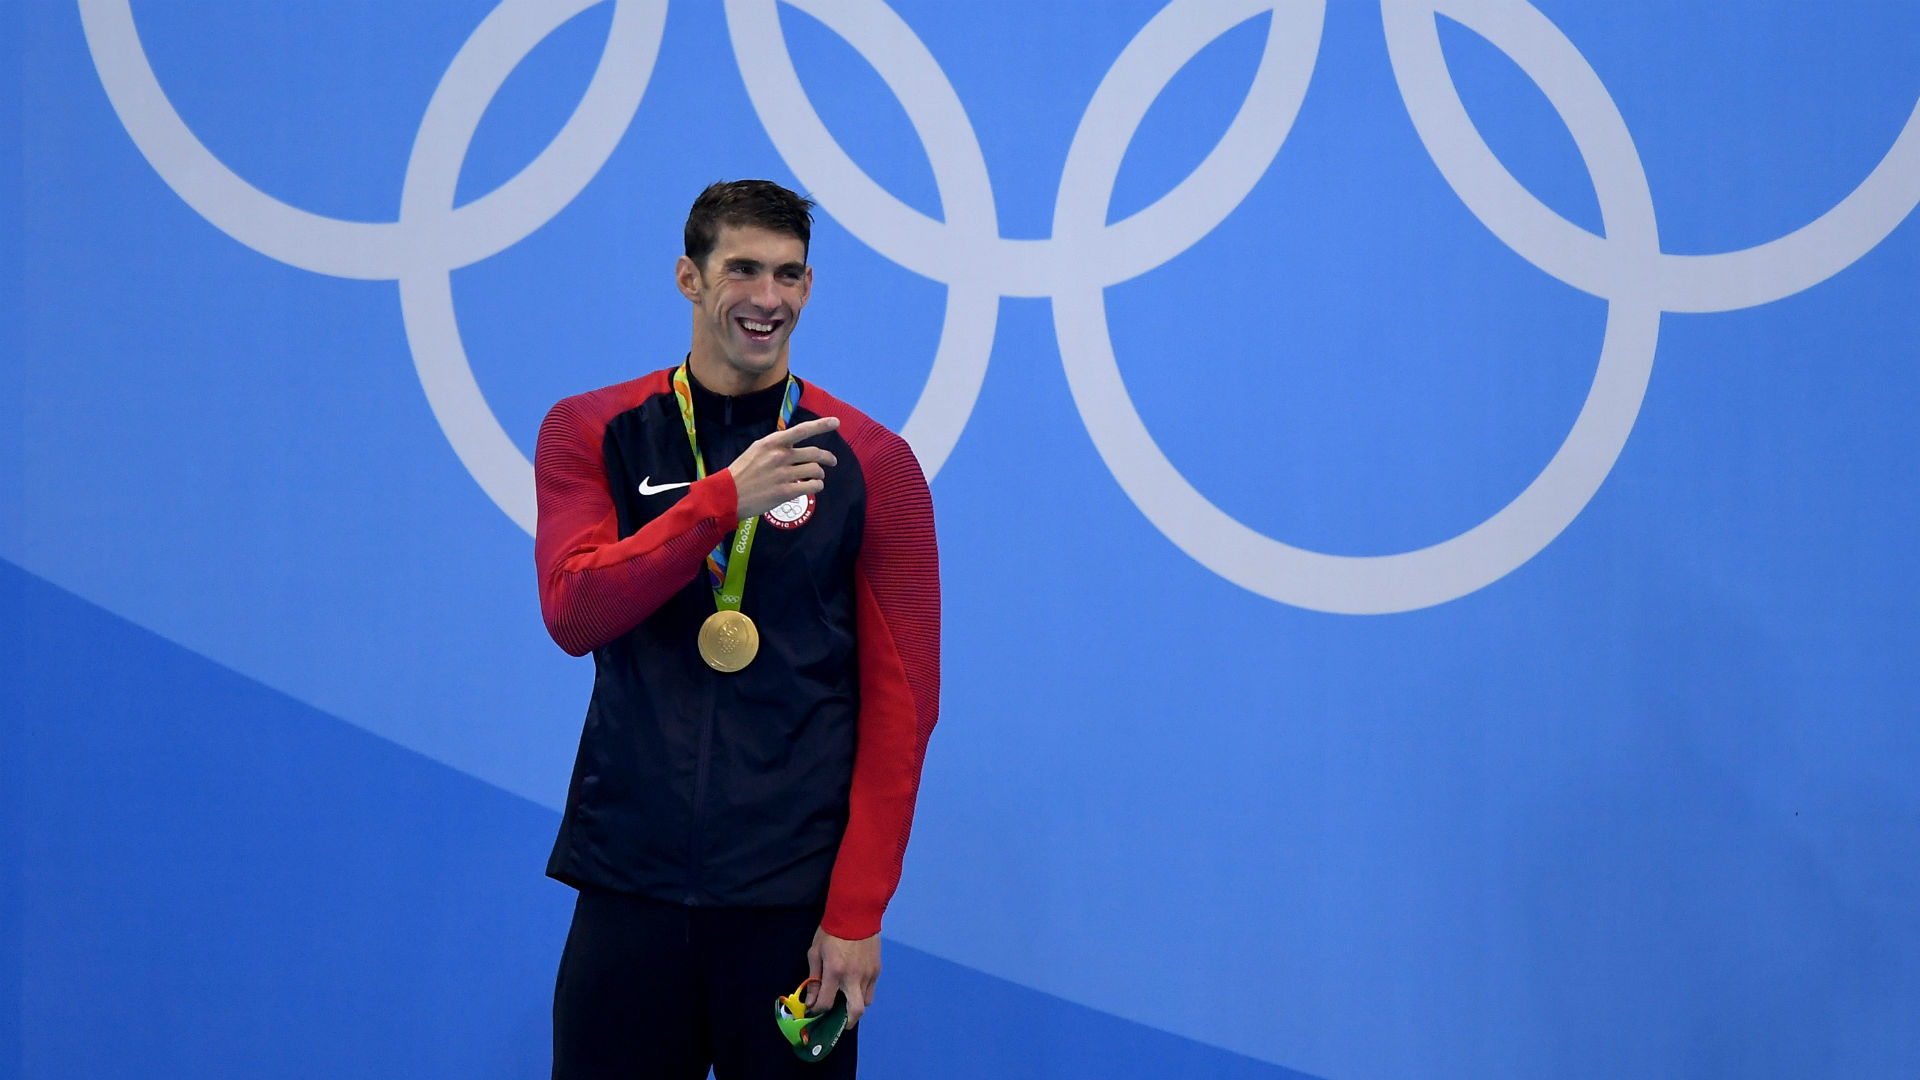 Why Michael Phelps laughed during national anthem